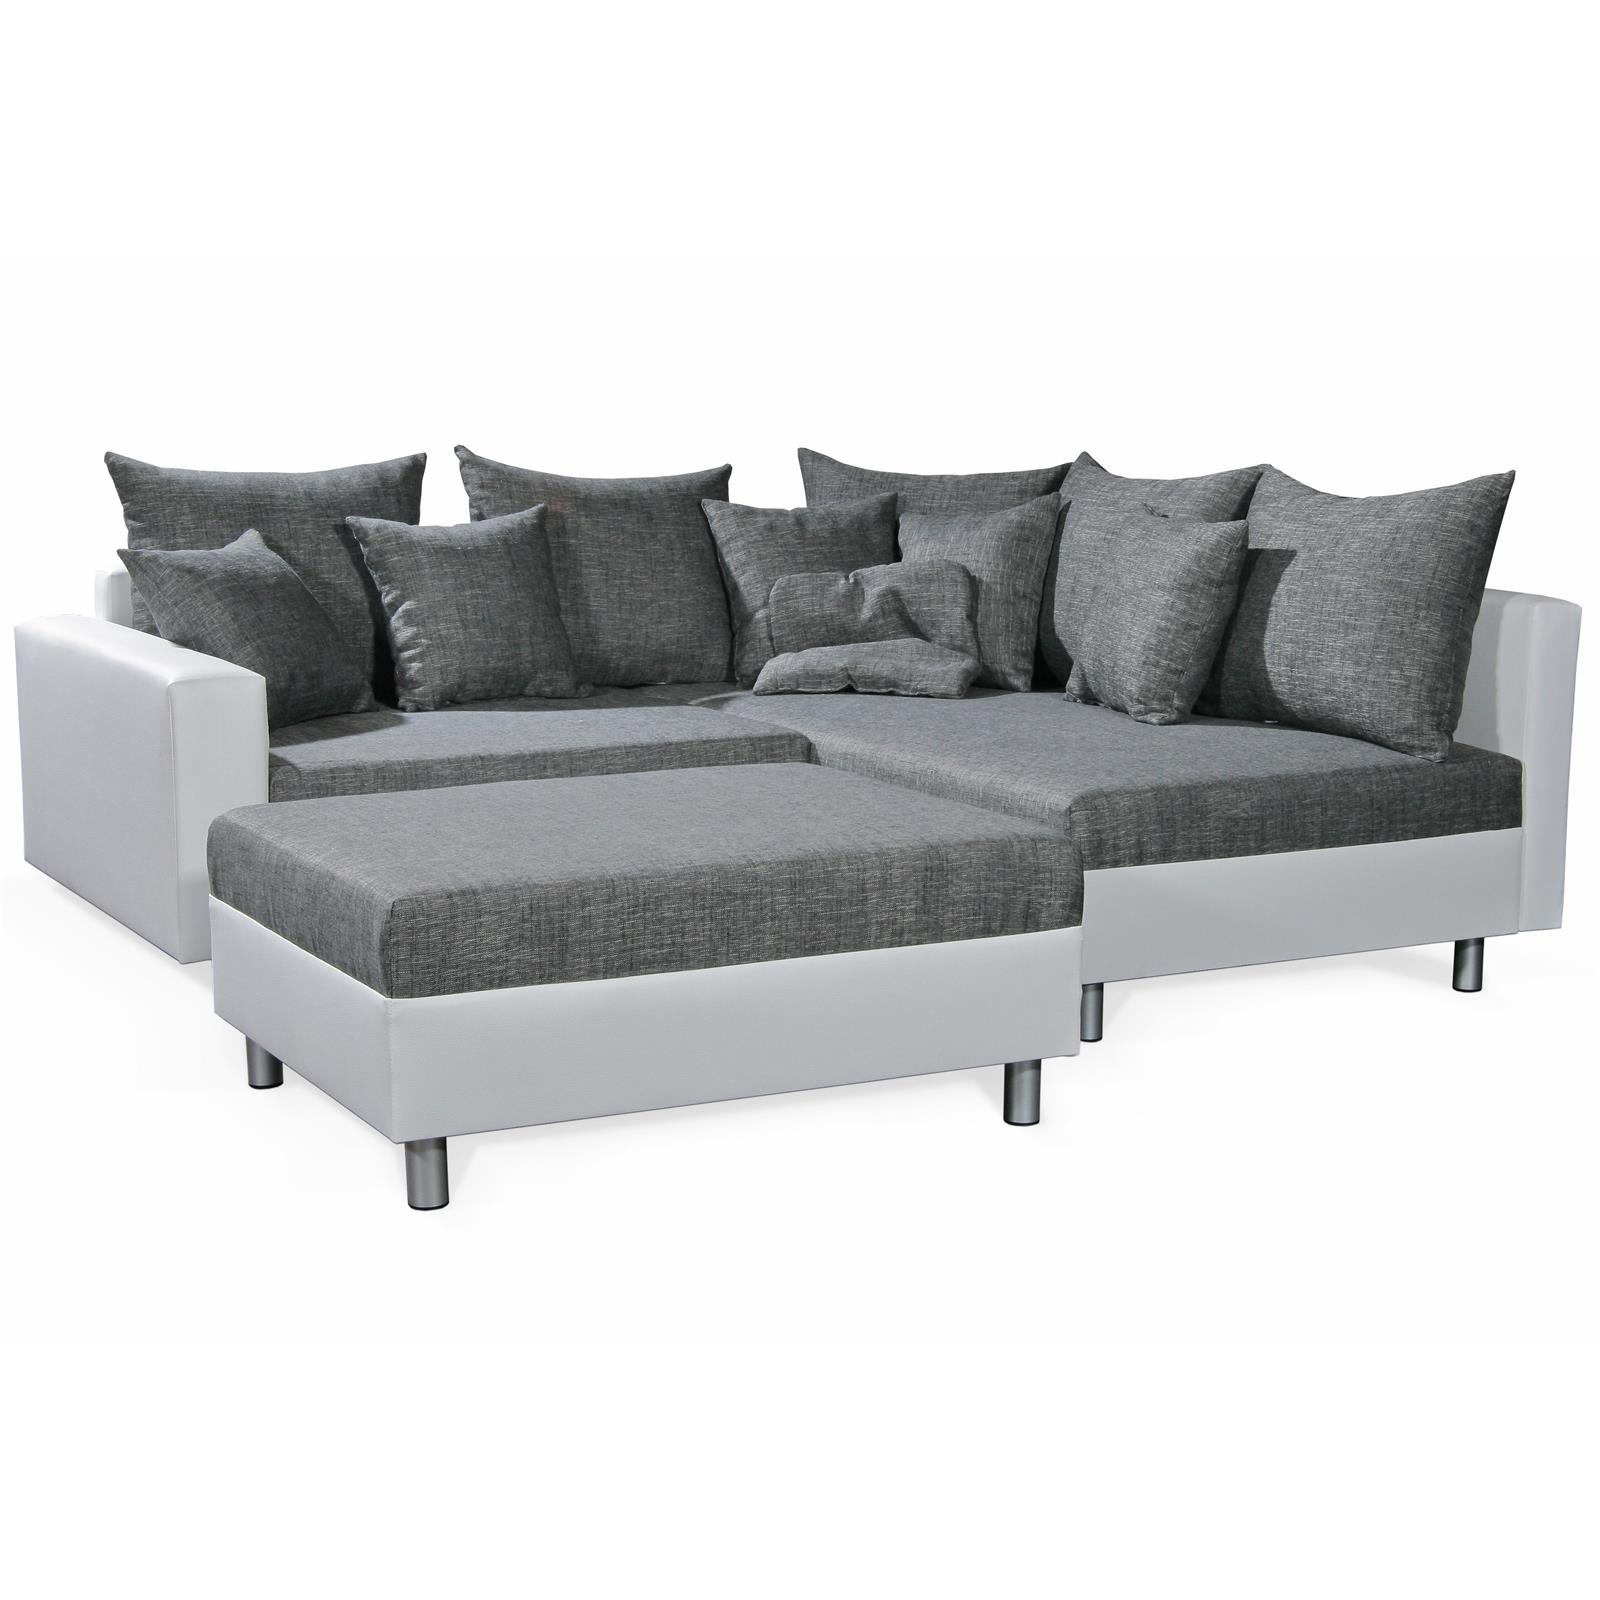 ecksofa couch mit hocker in schwarz weiss grau ottomane rechts polster garnitur ebay. Black Bedroom Furniture Sets. Home Design Ideas